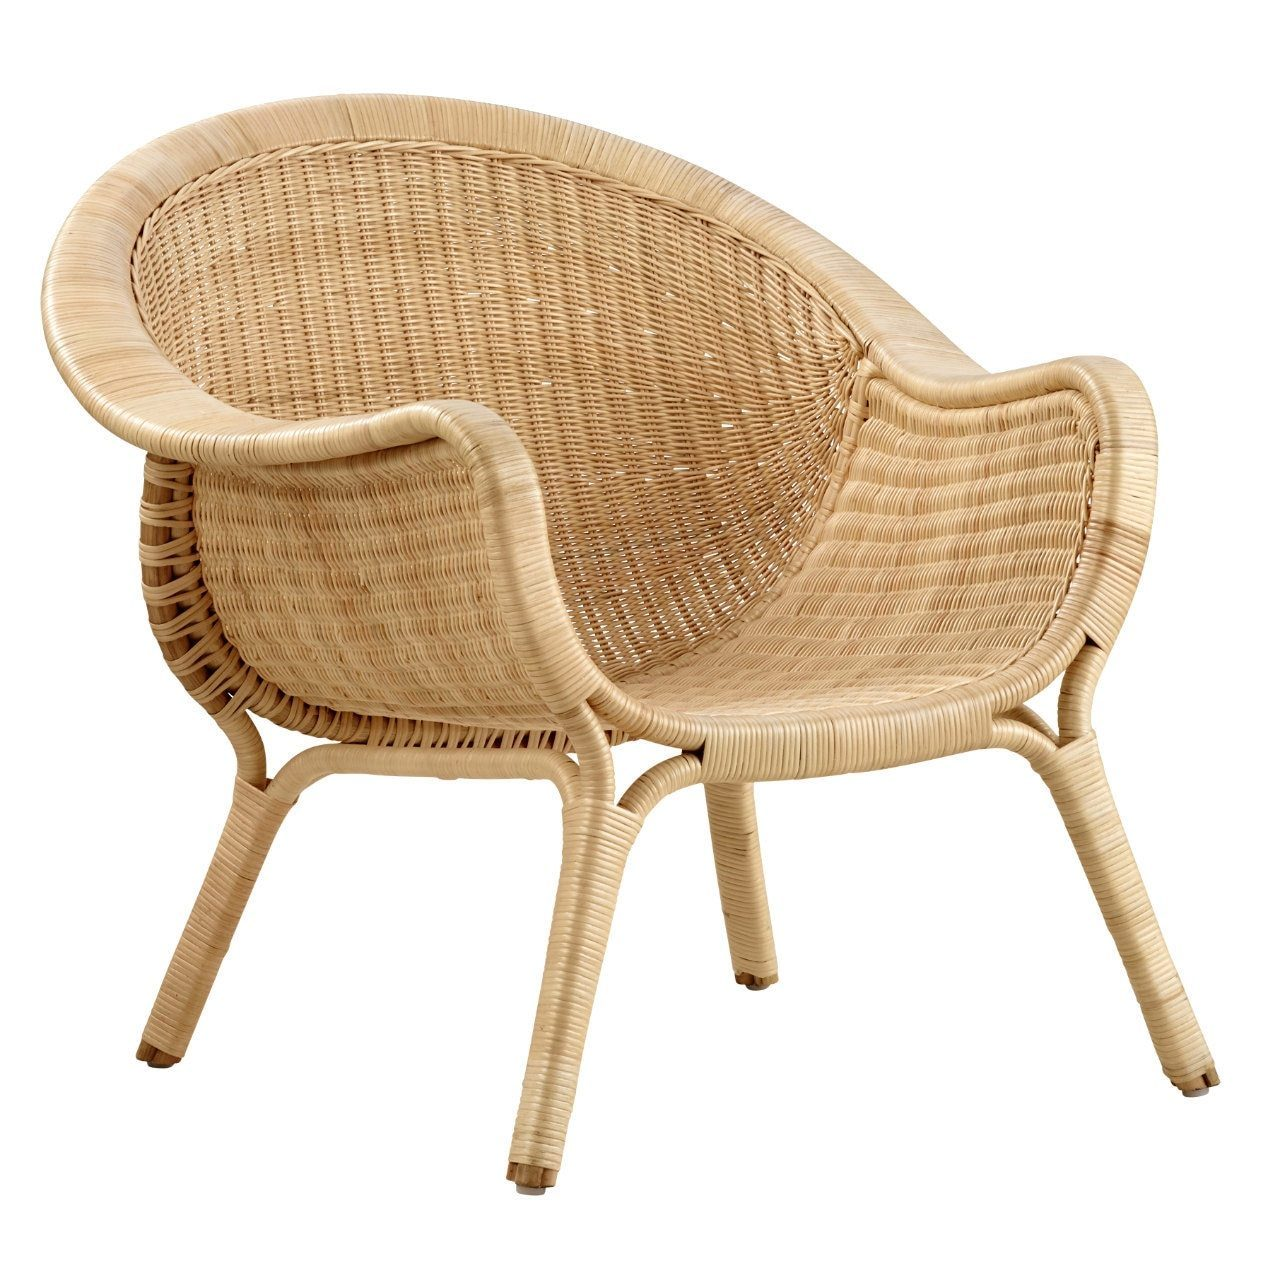 Sika, Madame Chair, Core Natural- Placewares